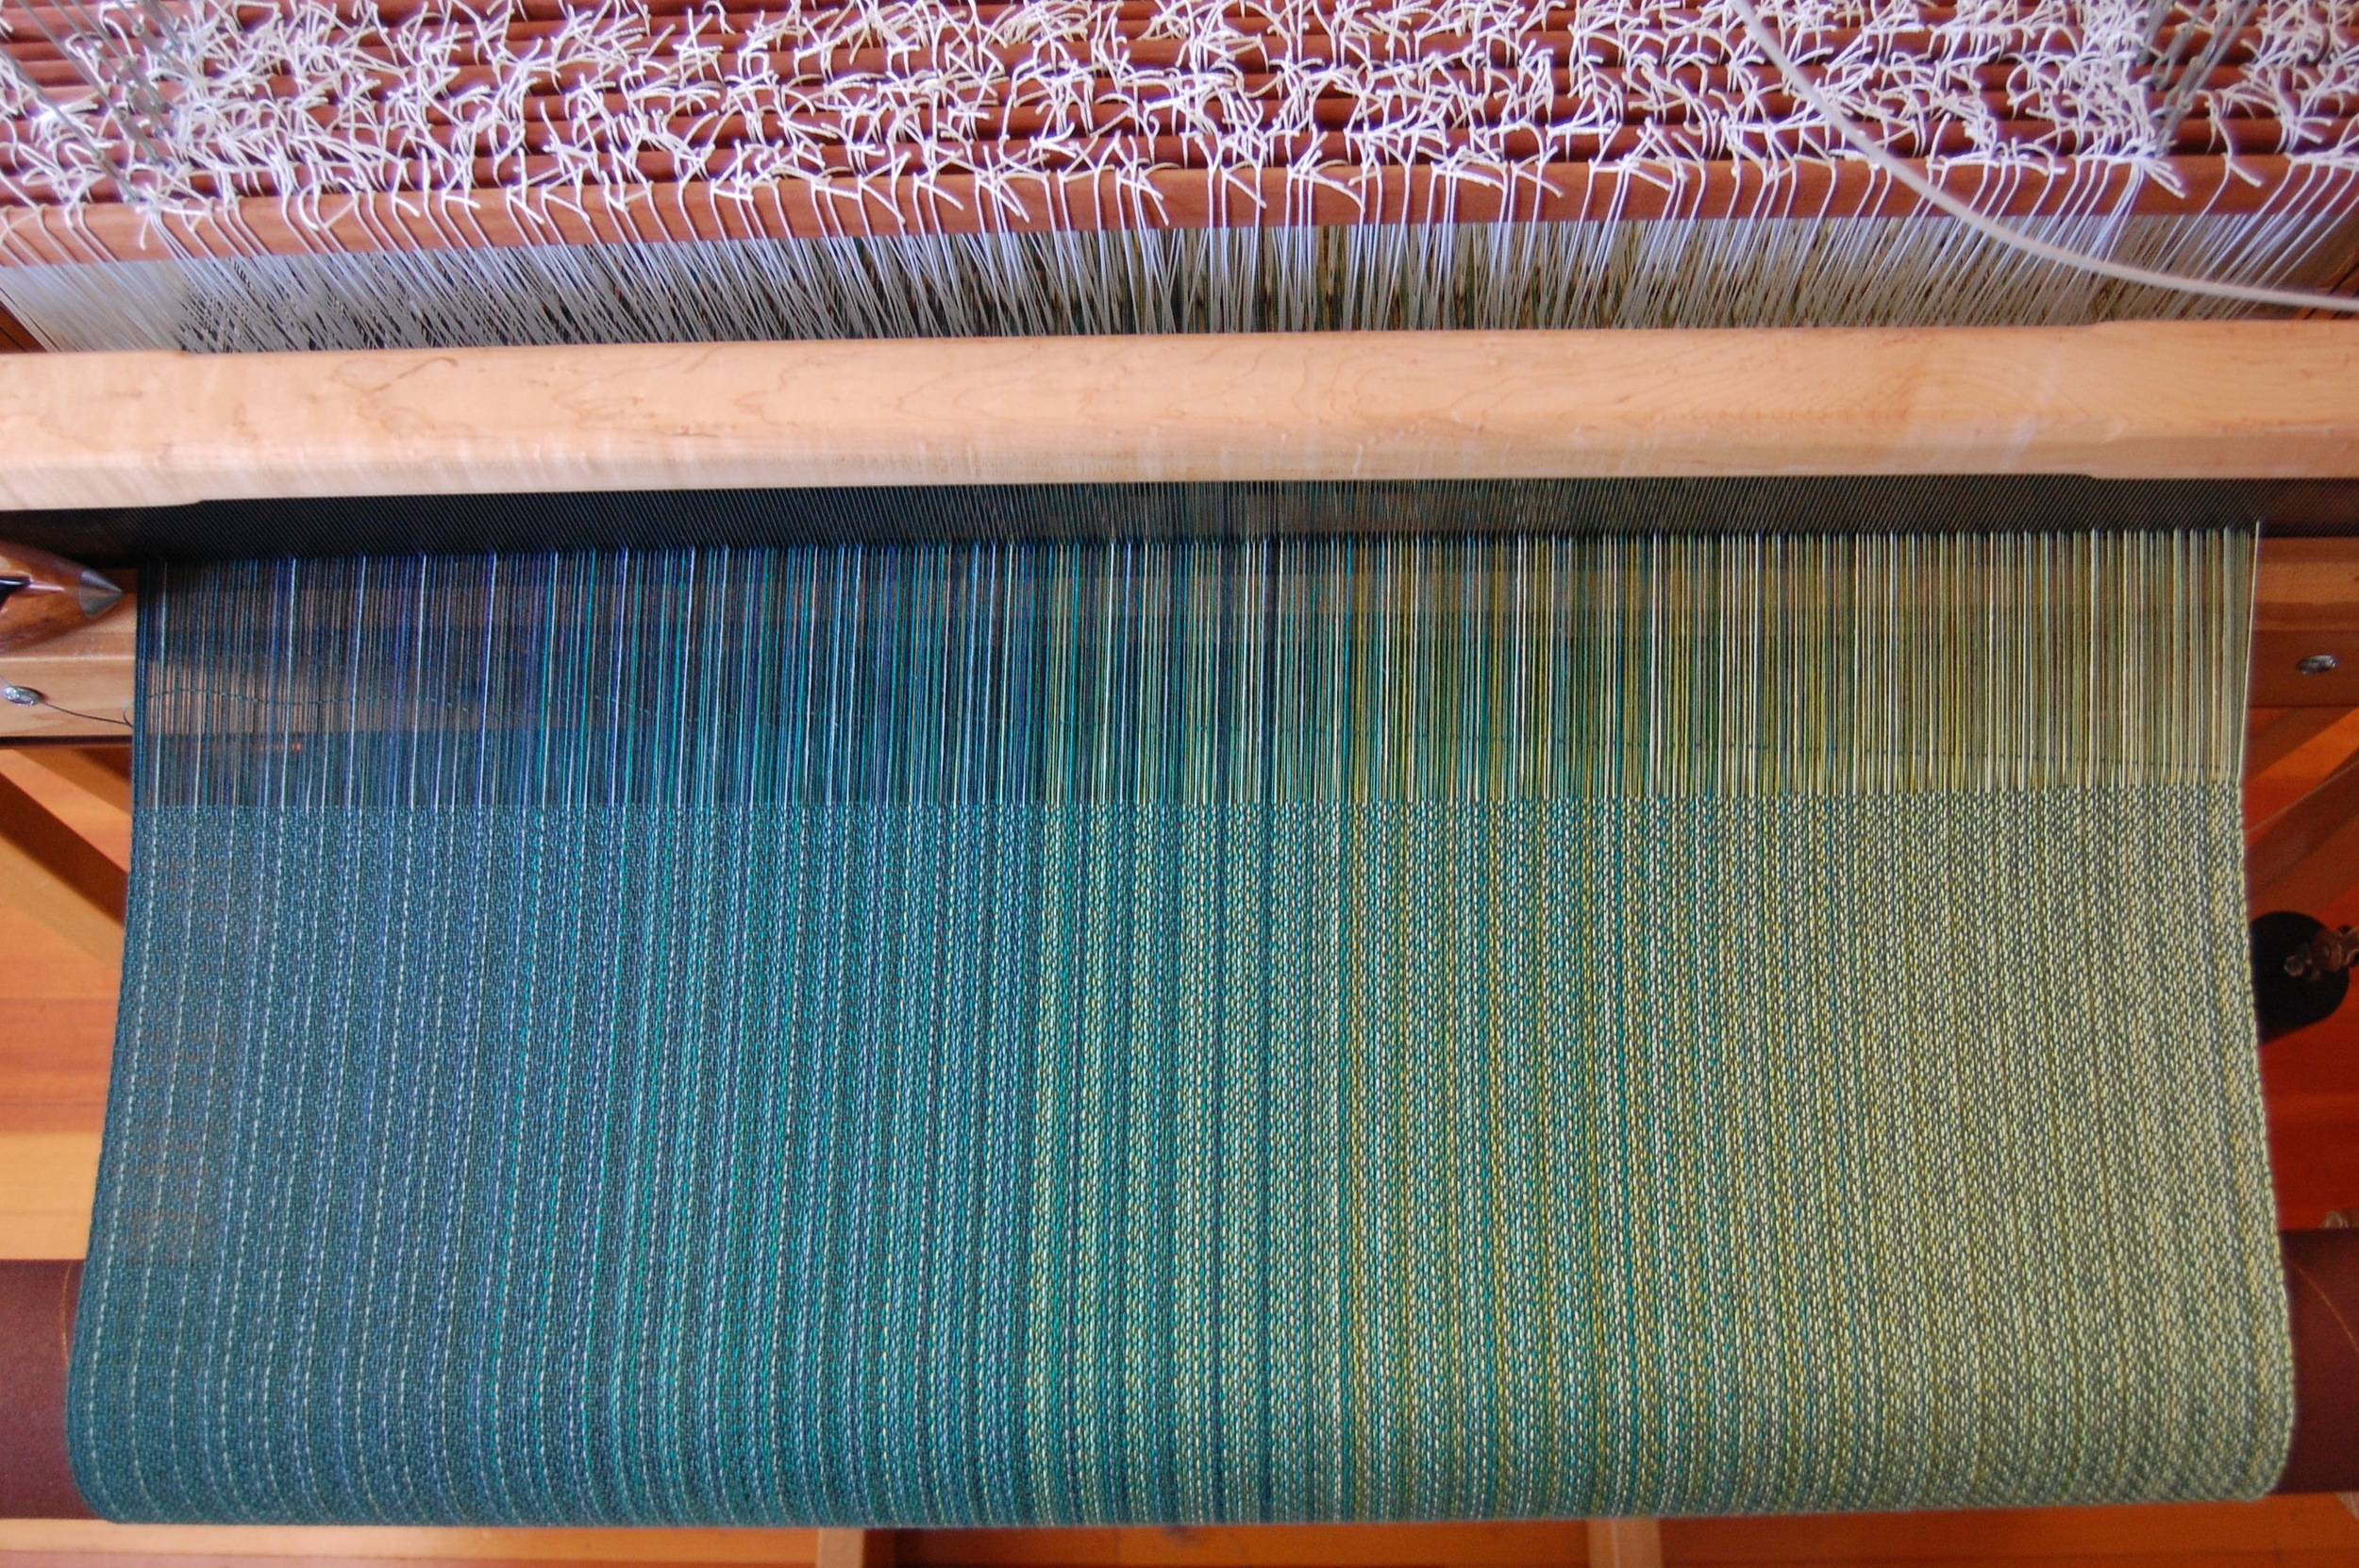 Greenish-teal Egyptian cotton weft